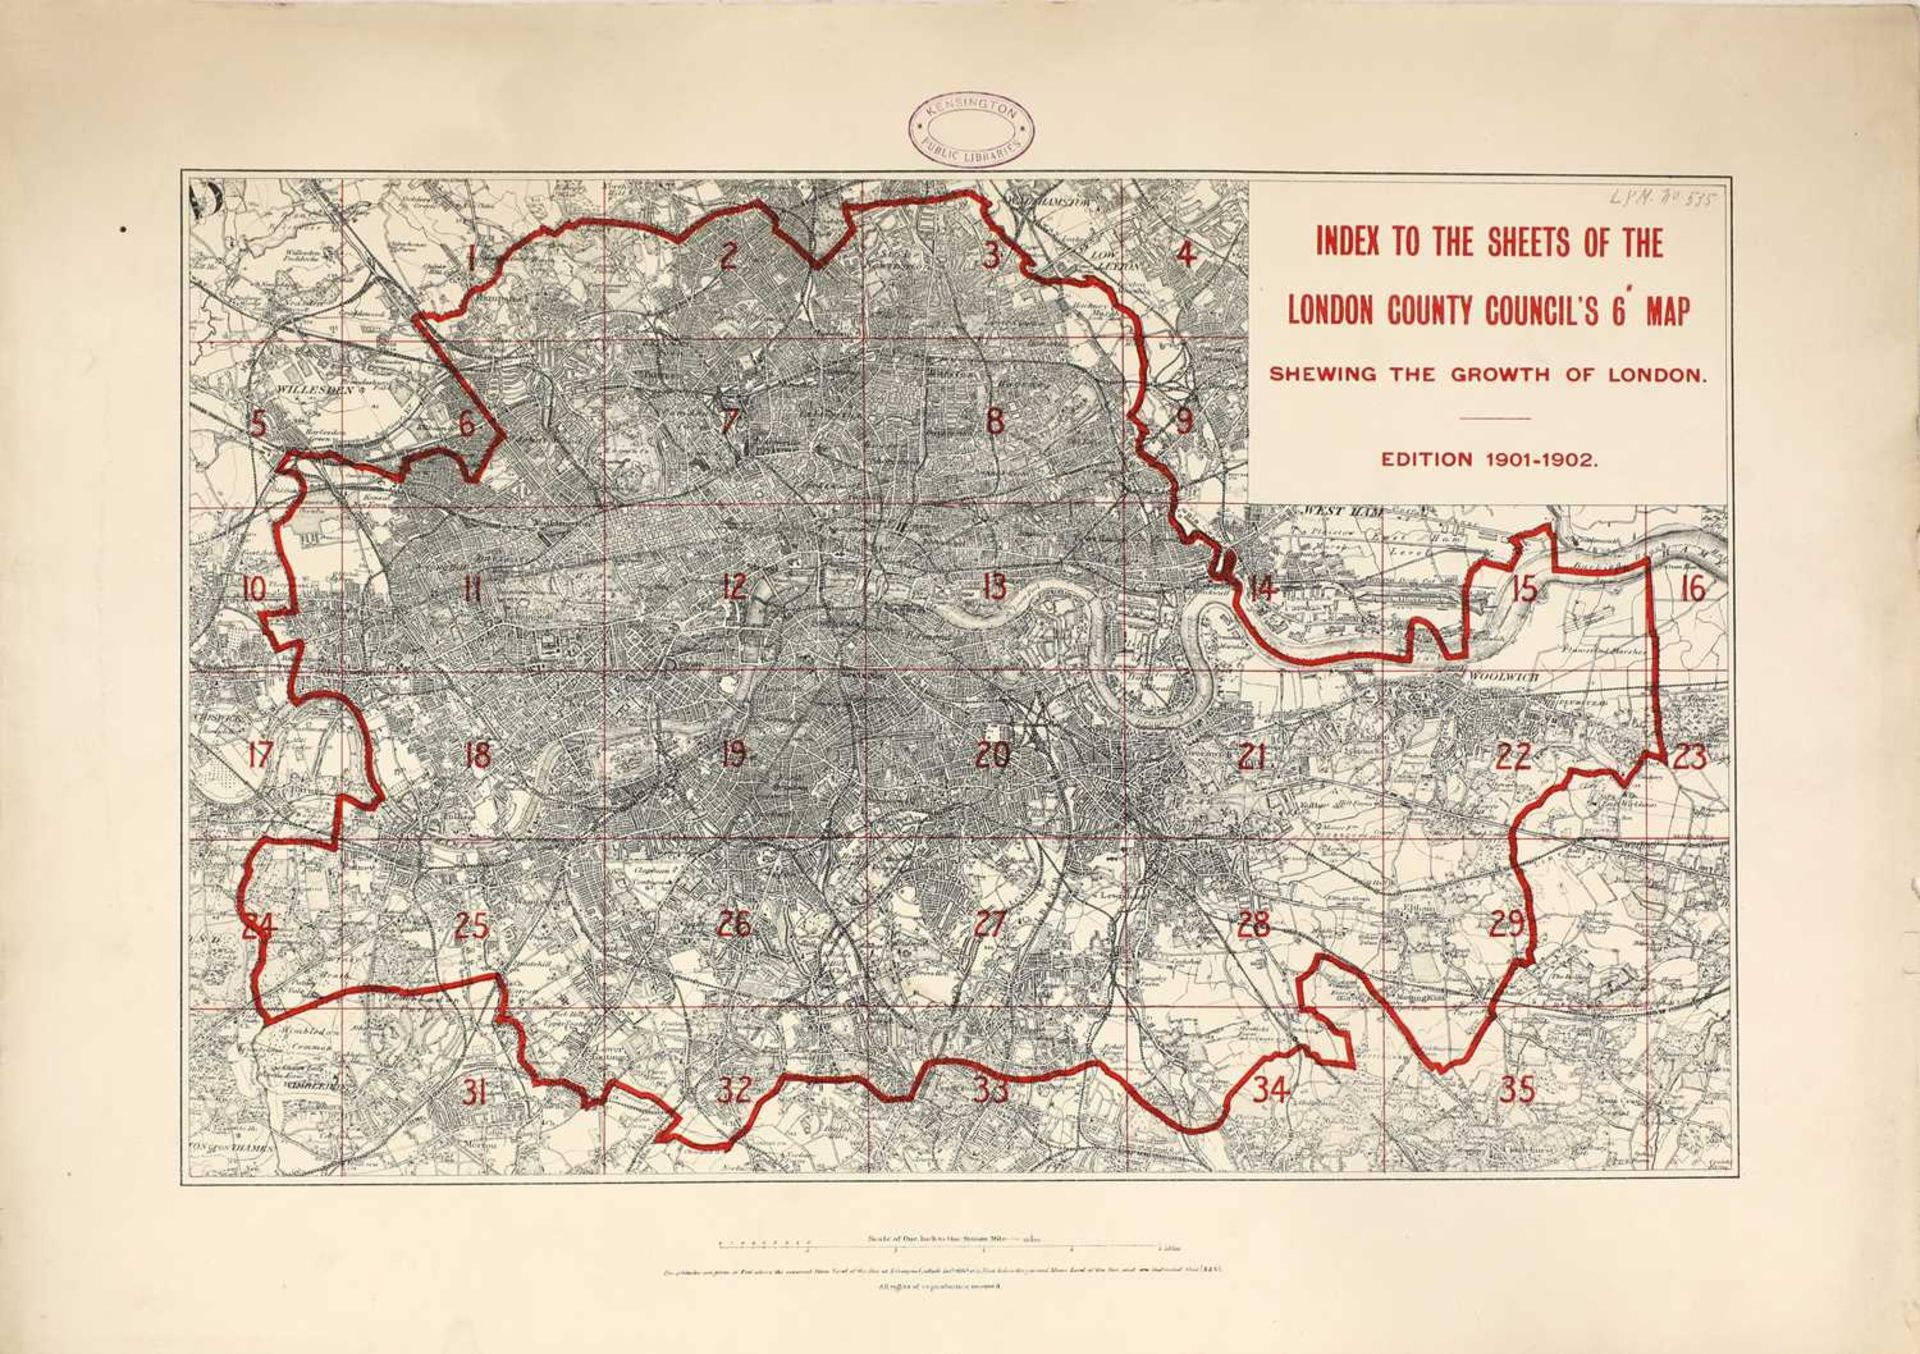 GROWTH OF LONDON MAPS 1901-1902,